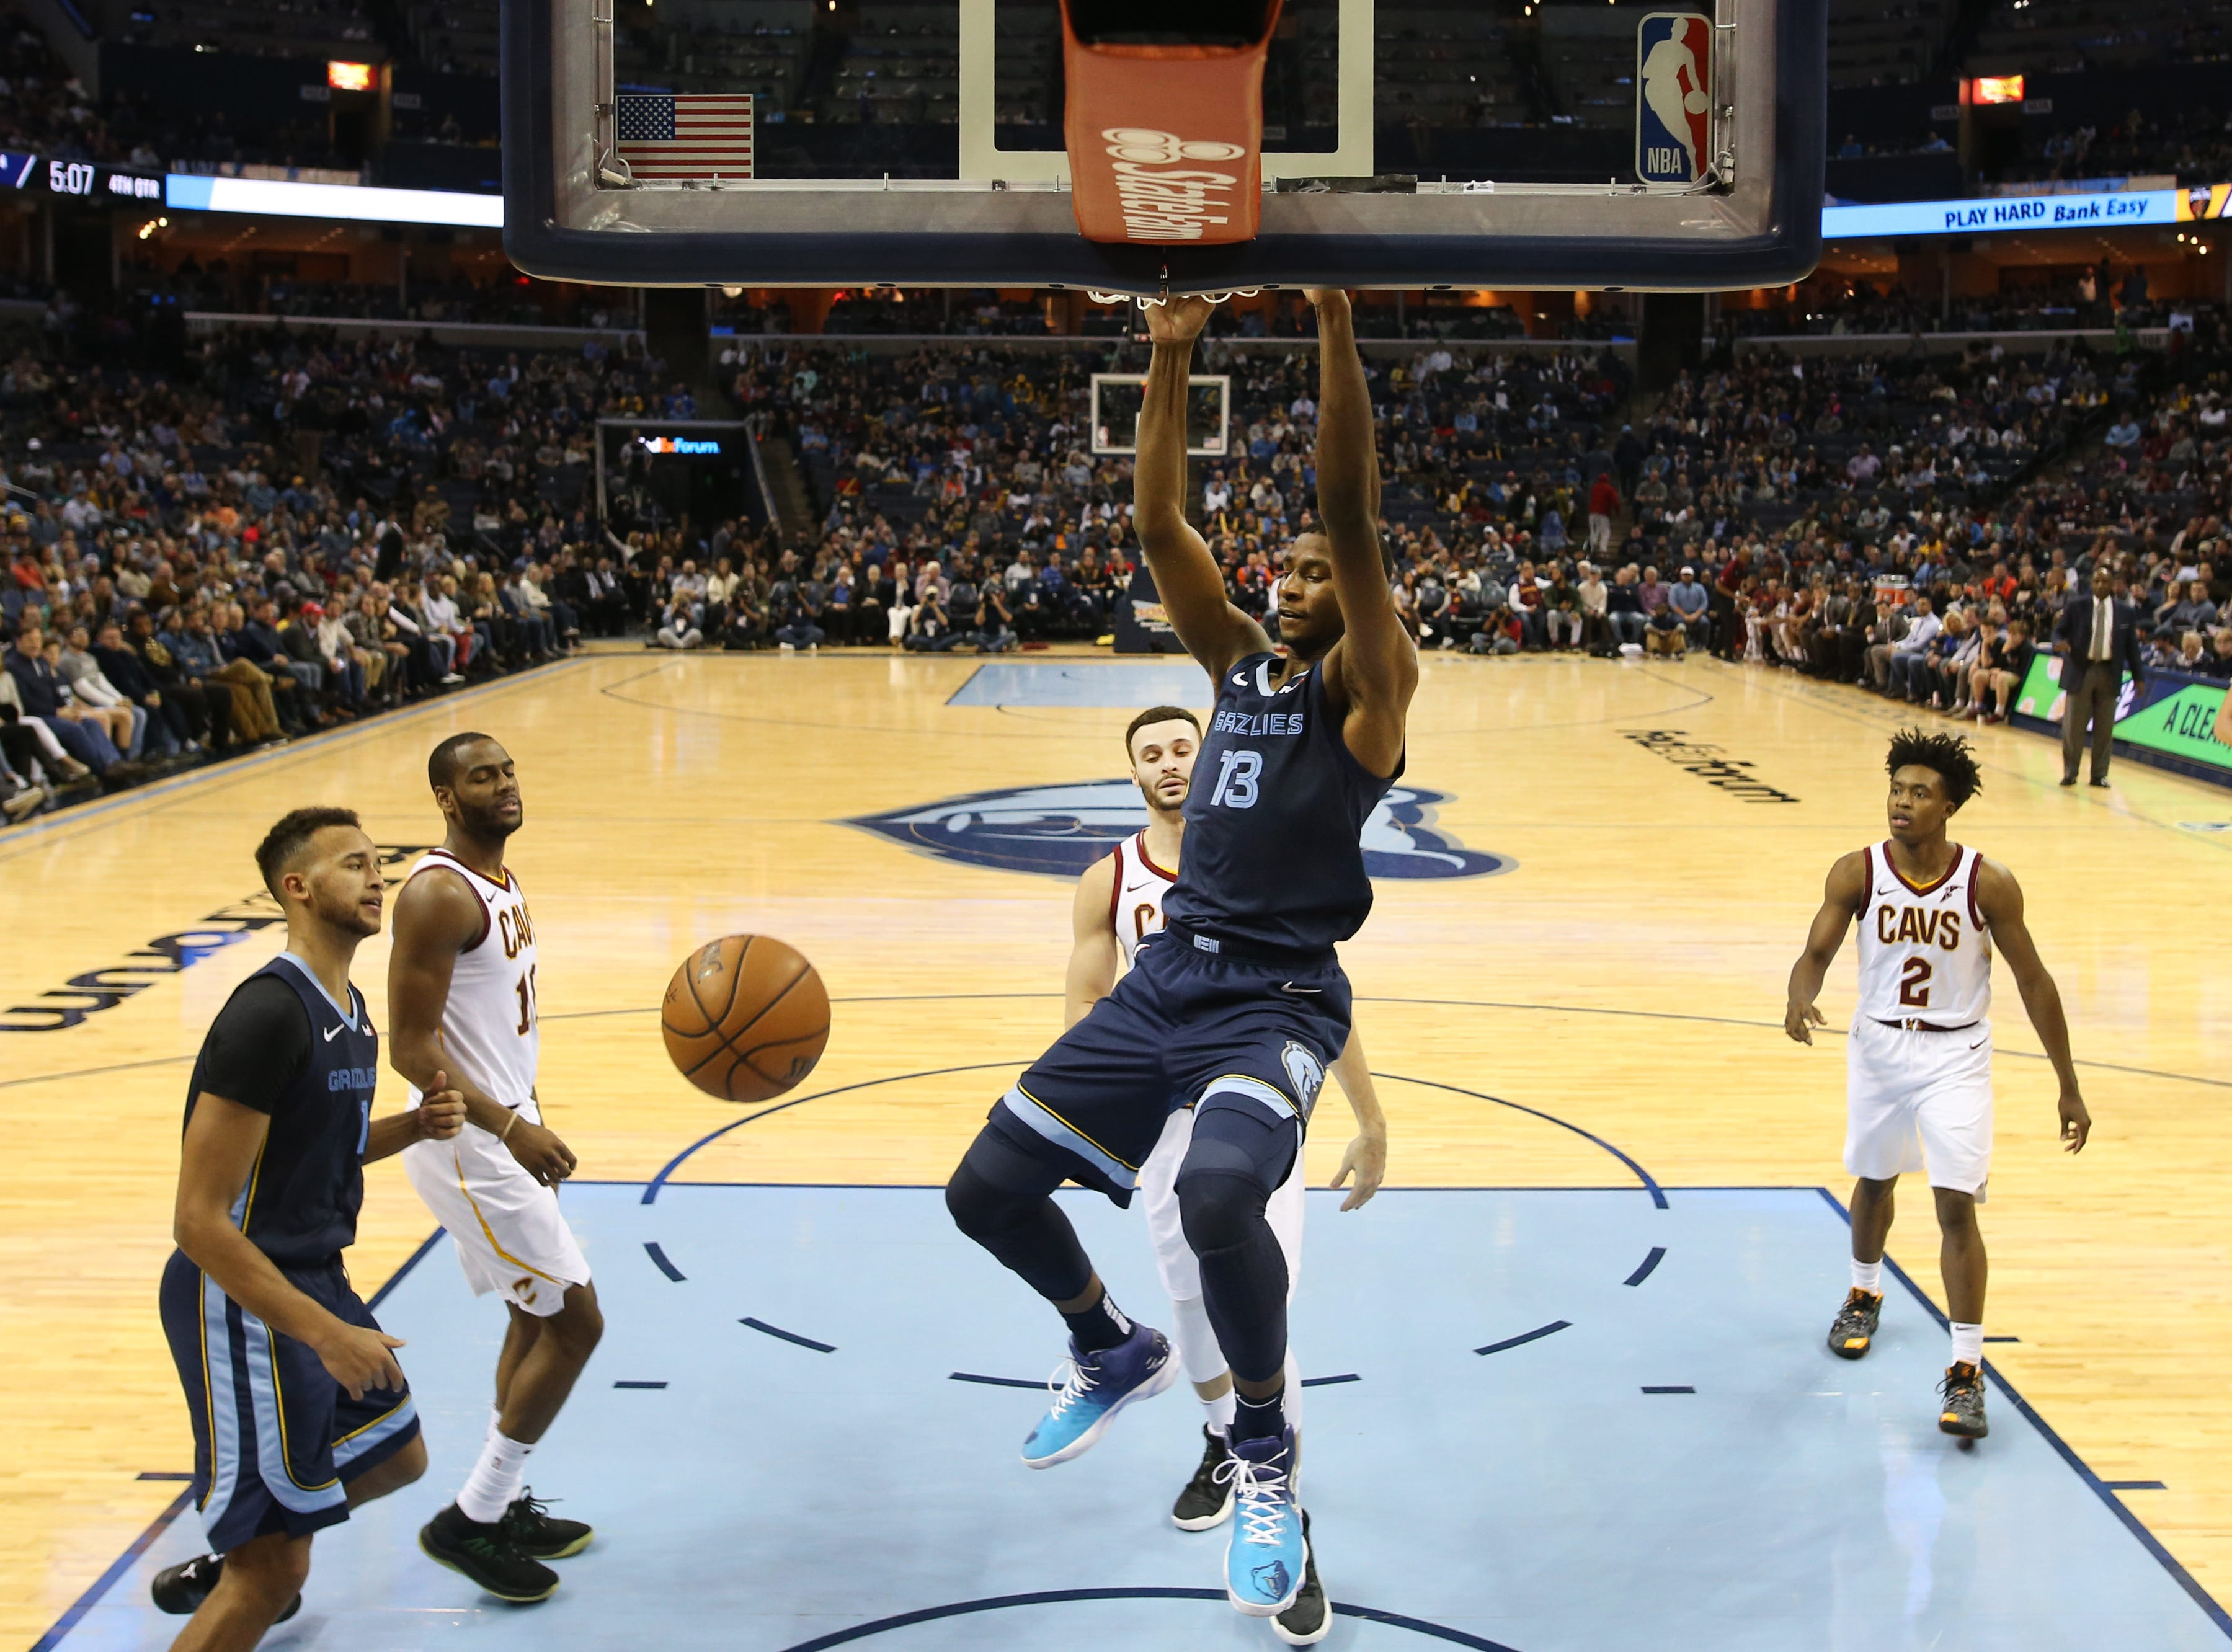 Memphis Grizzlies forward Jaren Jackson Jr. dunks the ball against the Cleveland Cavaliers during their game at the FedExForum on Wednesday, Dec. 26, 2018.